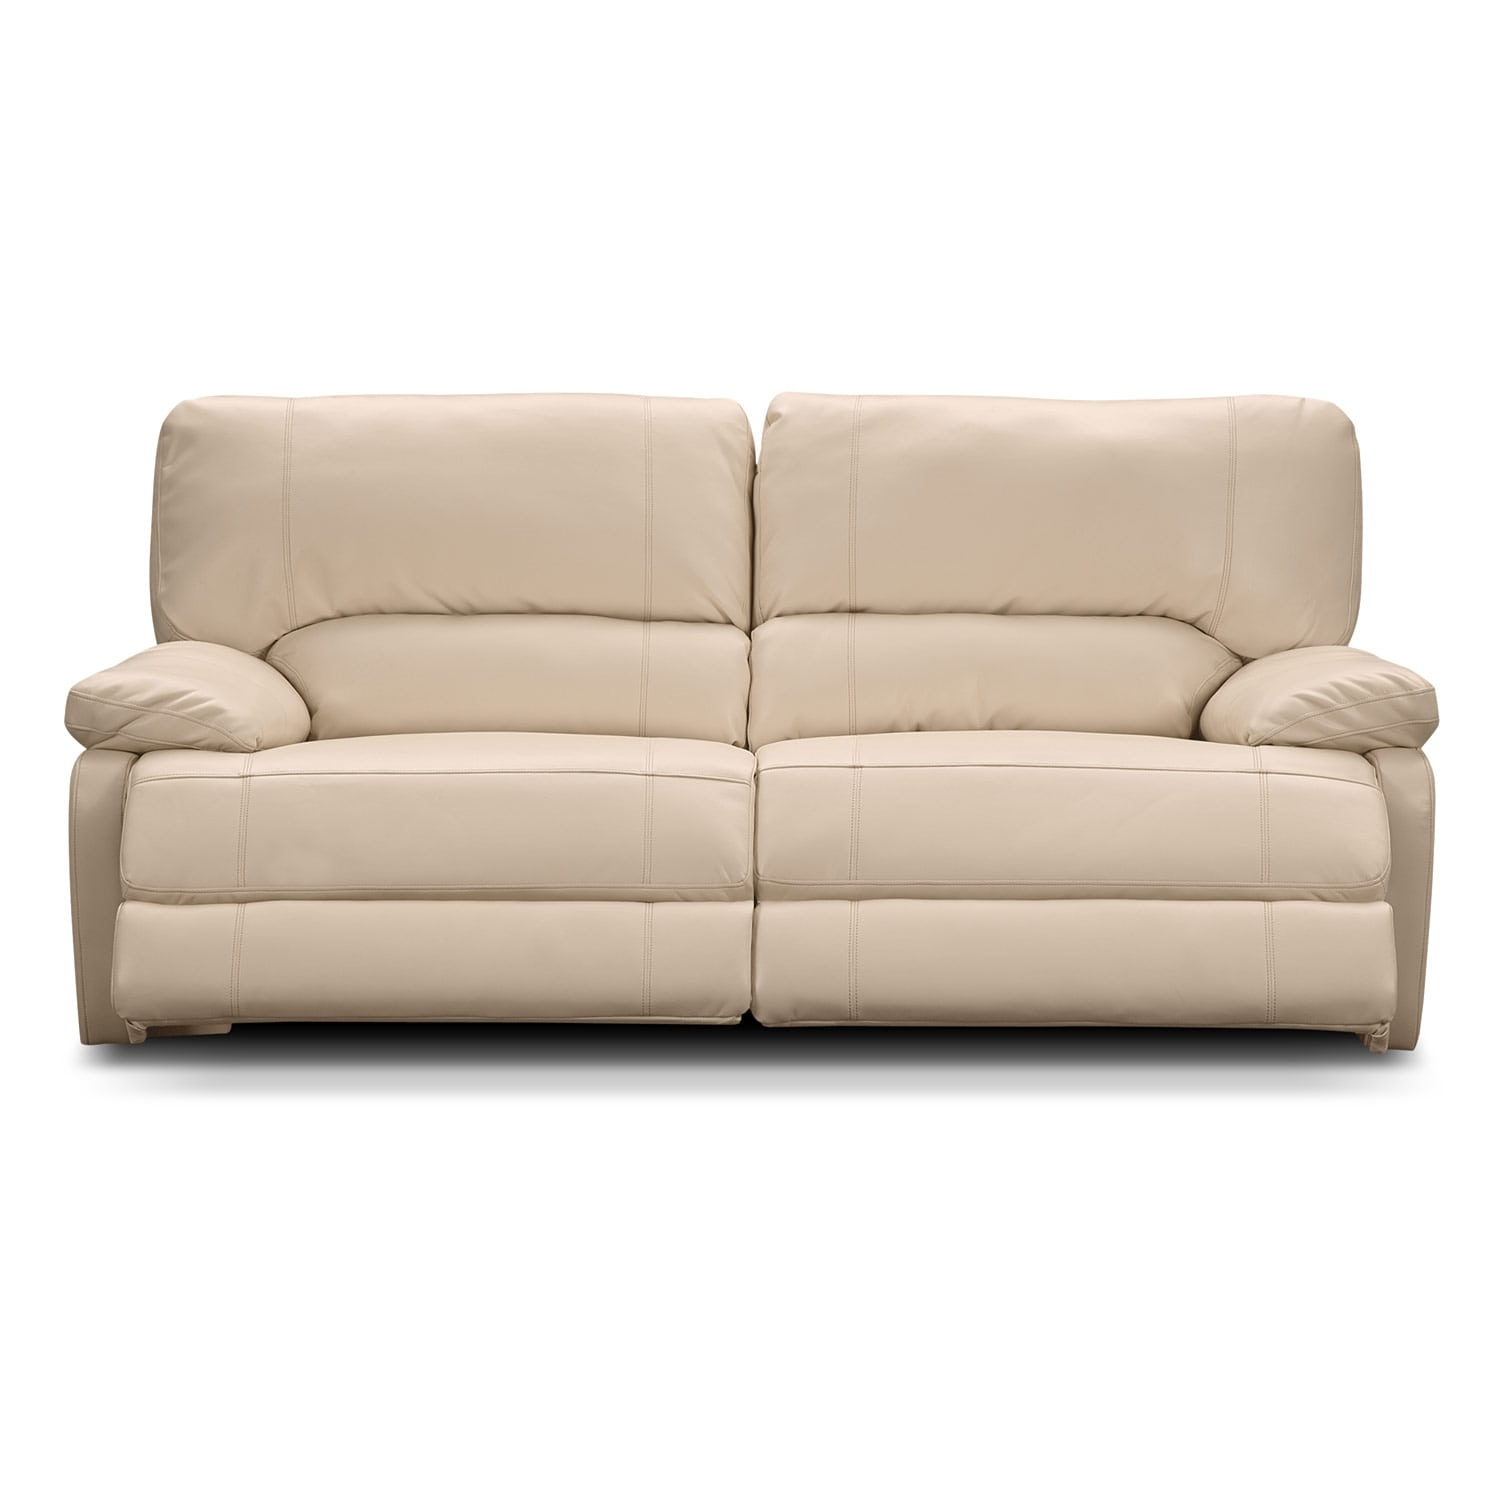 Furniture power recliner sofa hamlin power reclining leather sofa coming soon www furniture Leather reclining loveseat